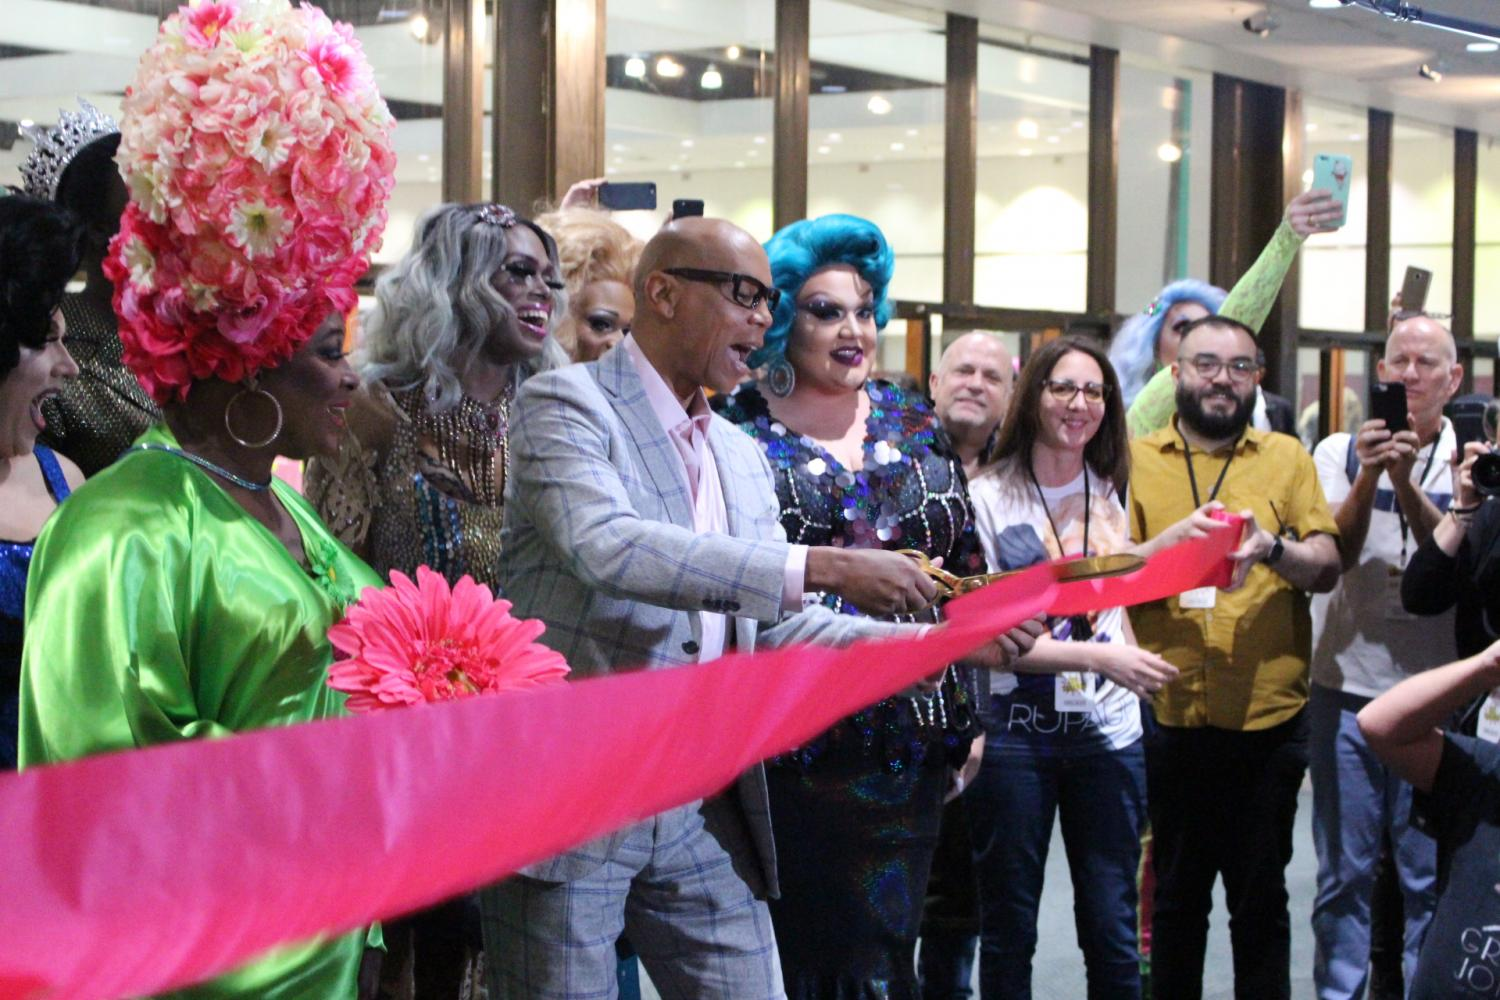 RuPaul and the cast of season 9 kick-off third annual DragCon on April 29.